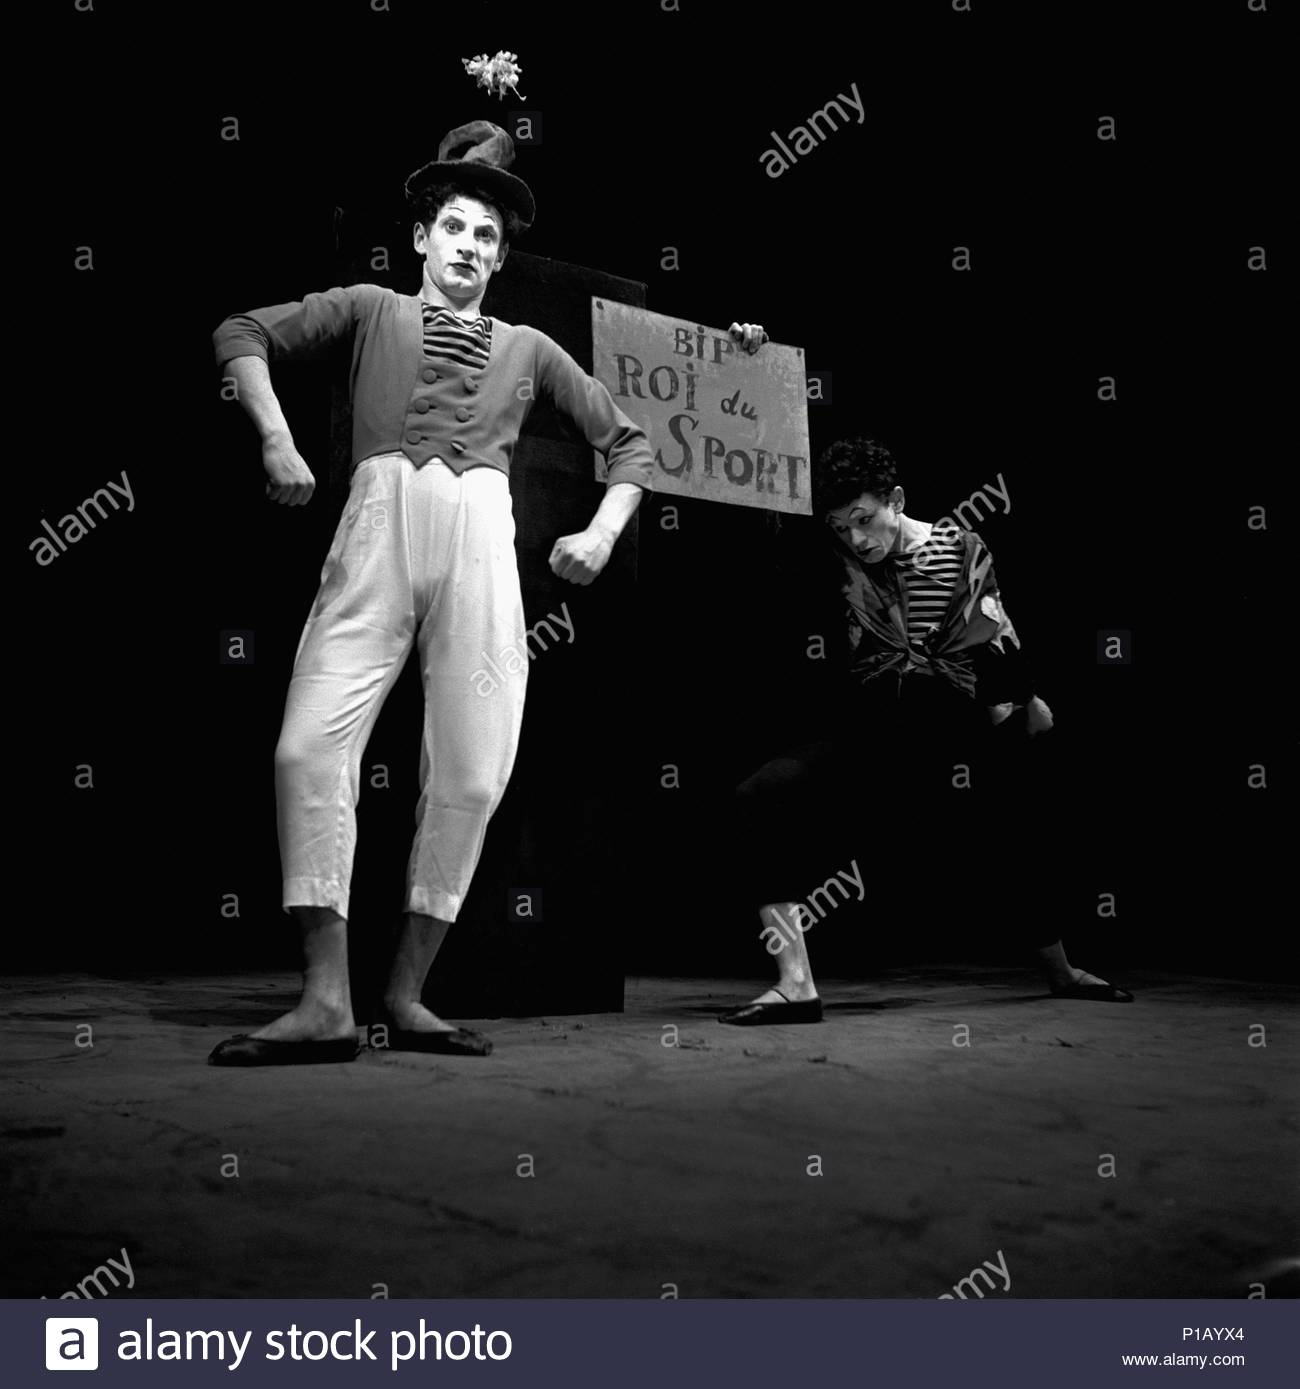 Marcel Marceau,the French mime who created the figure of 'Bip',a tragic white clown. Paris,1951. Location: Townscape, Paris, France. - Stock Image